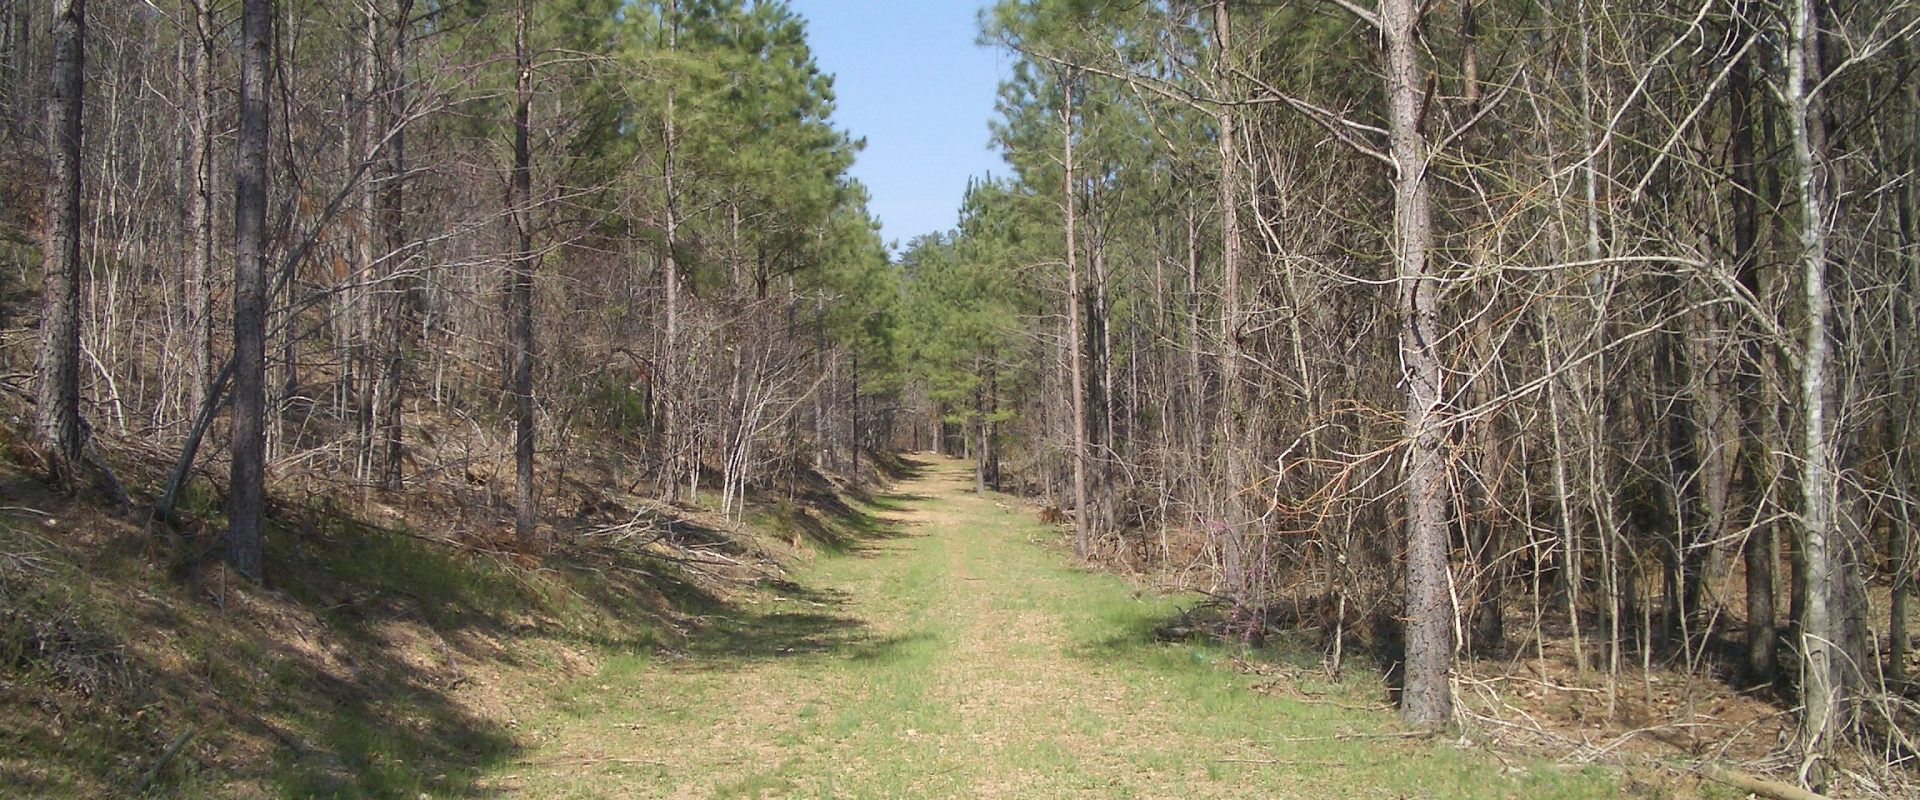 616 Acres on Shirley Road